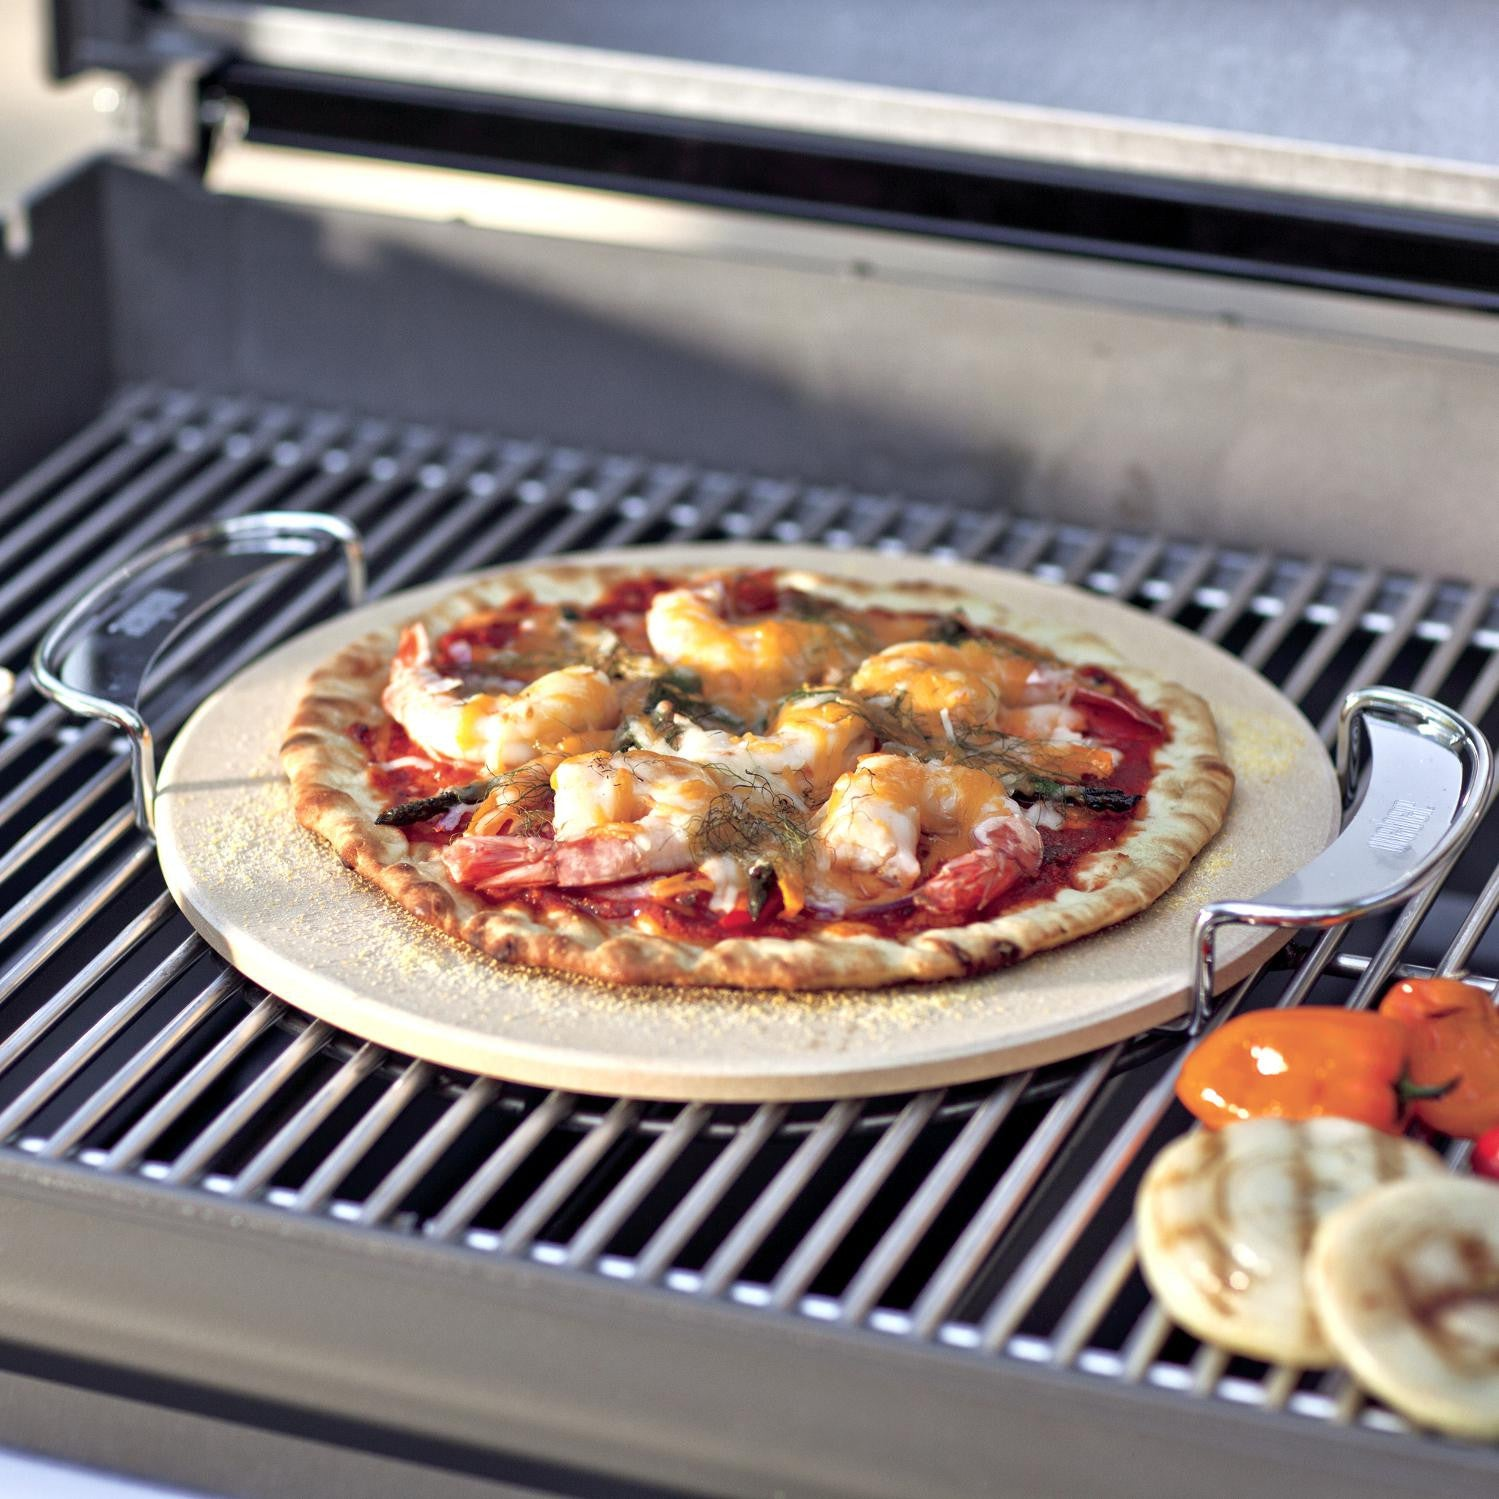 Weber 8836 Pizza Stone Set - 2-Pieces